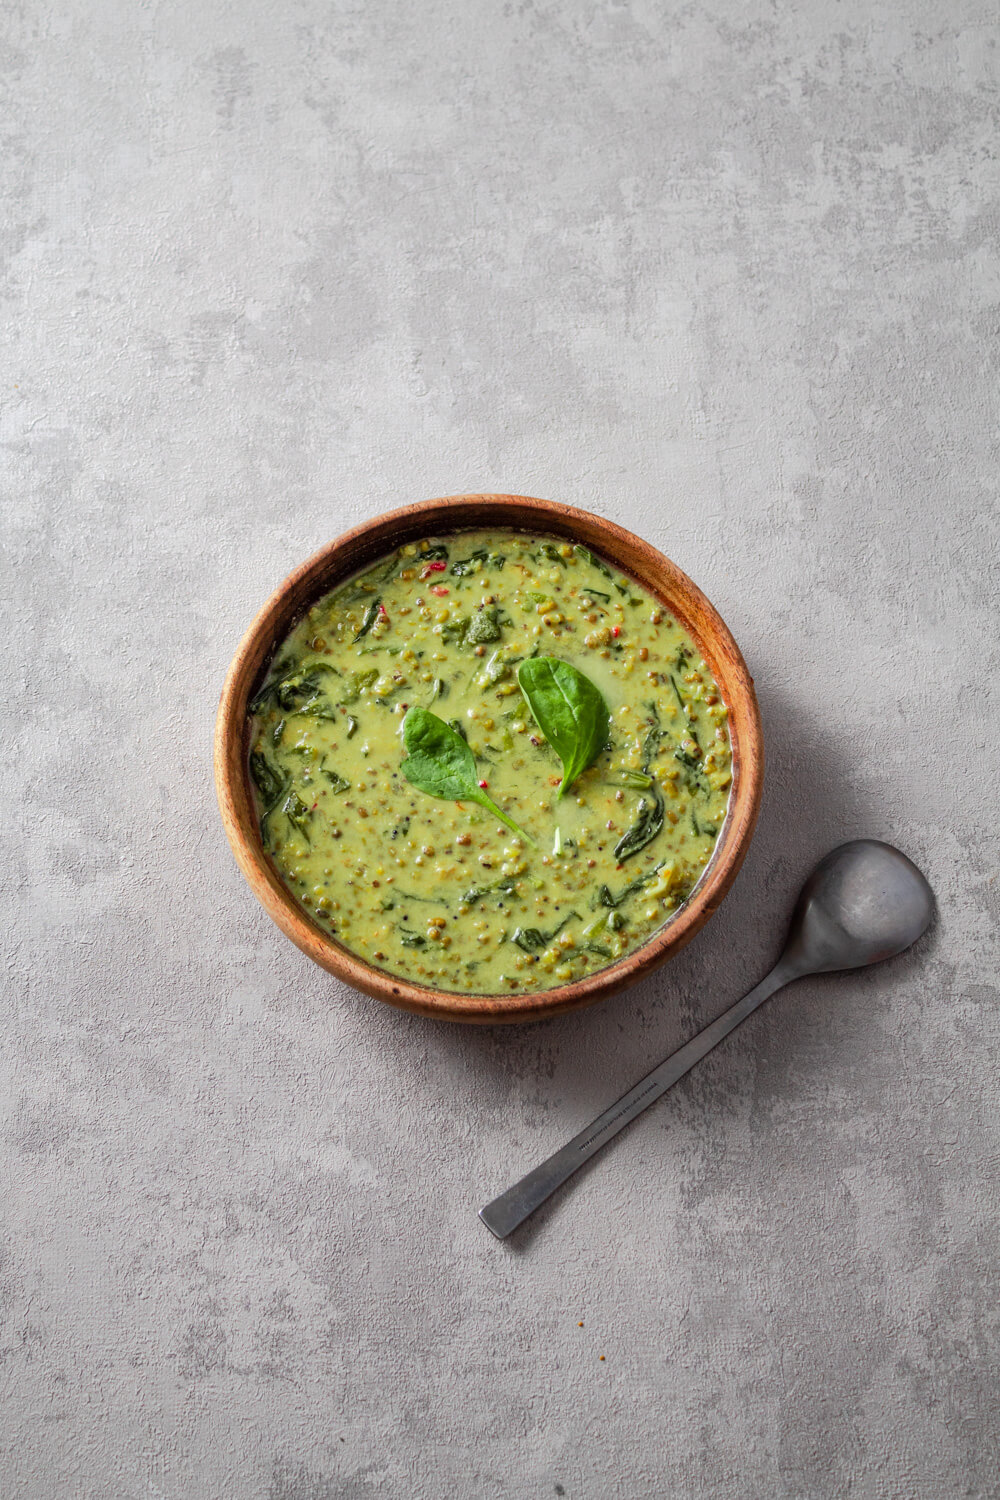 Mung bean and spinach curry in a bowl with a garnish of spinach leaves.